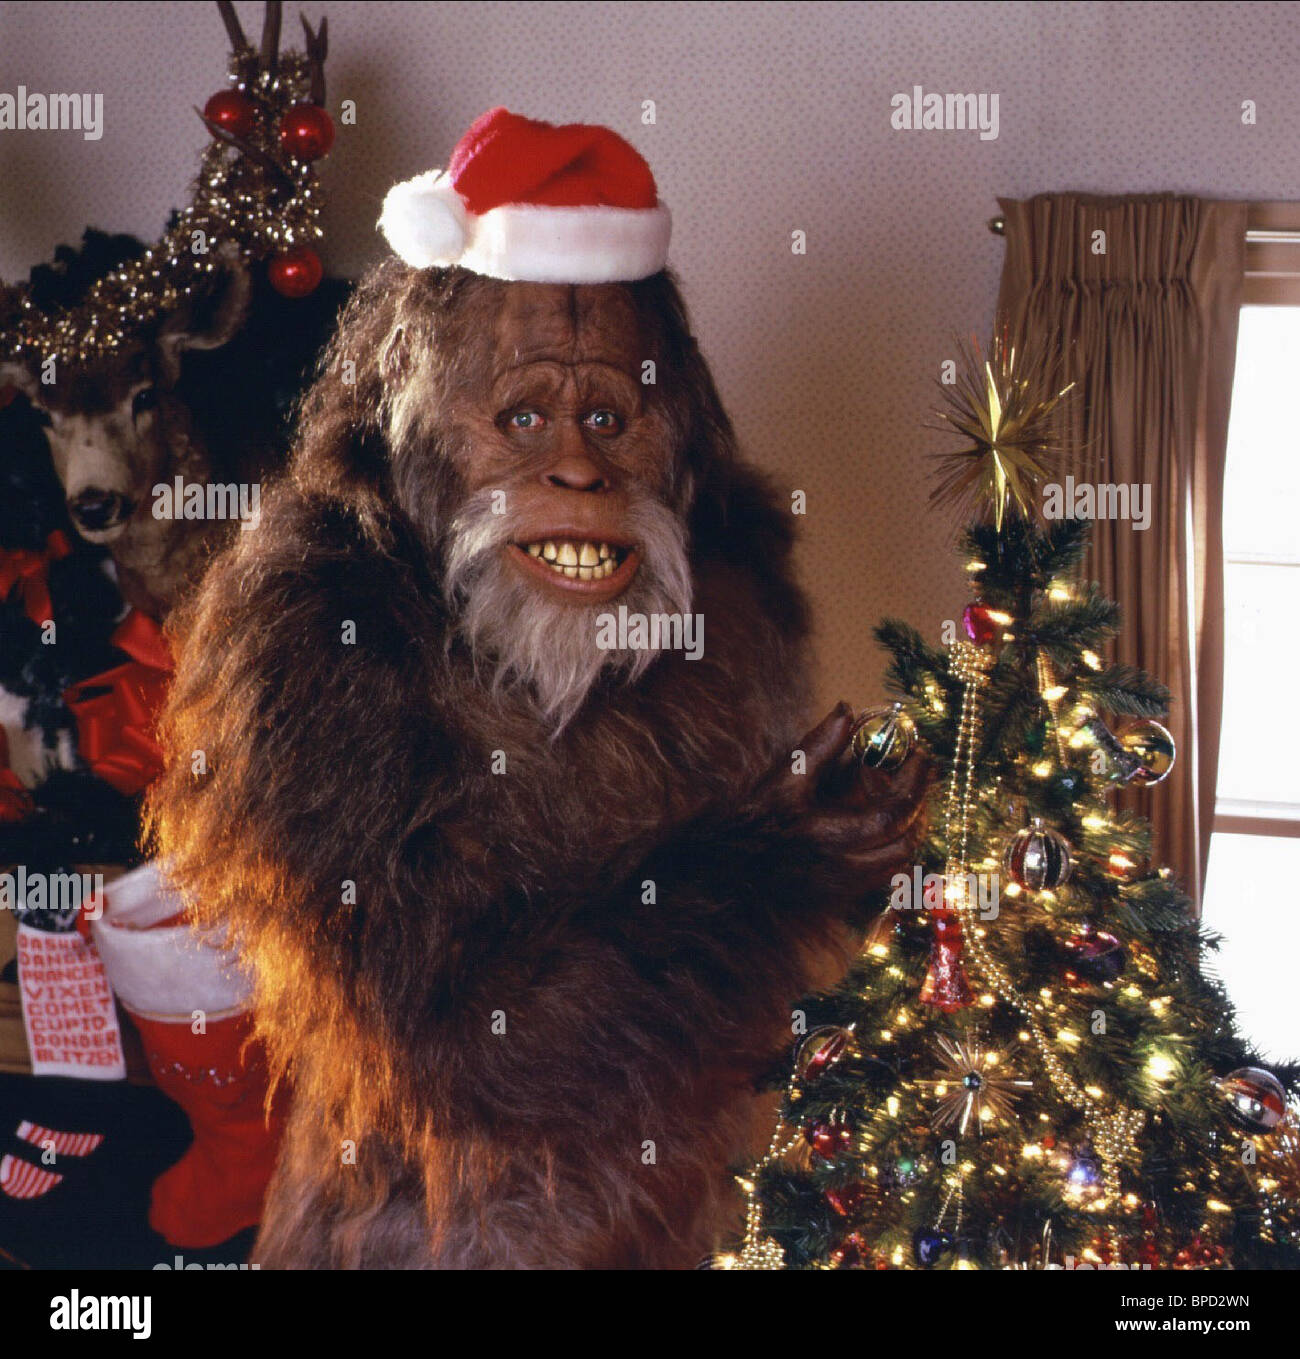 bigfoot harry and the hendersons 1987 stock image - Bigfoot Christmas Ornament